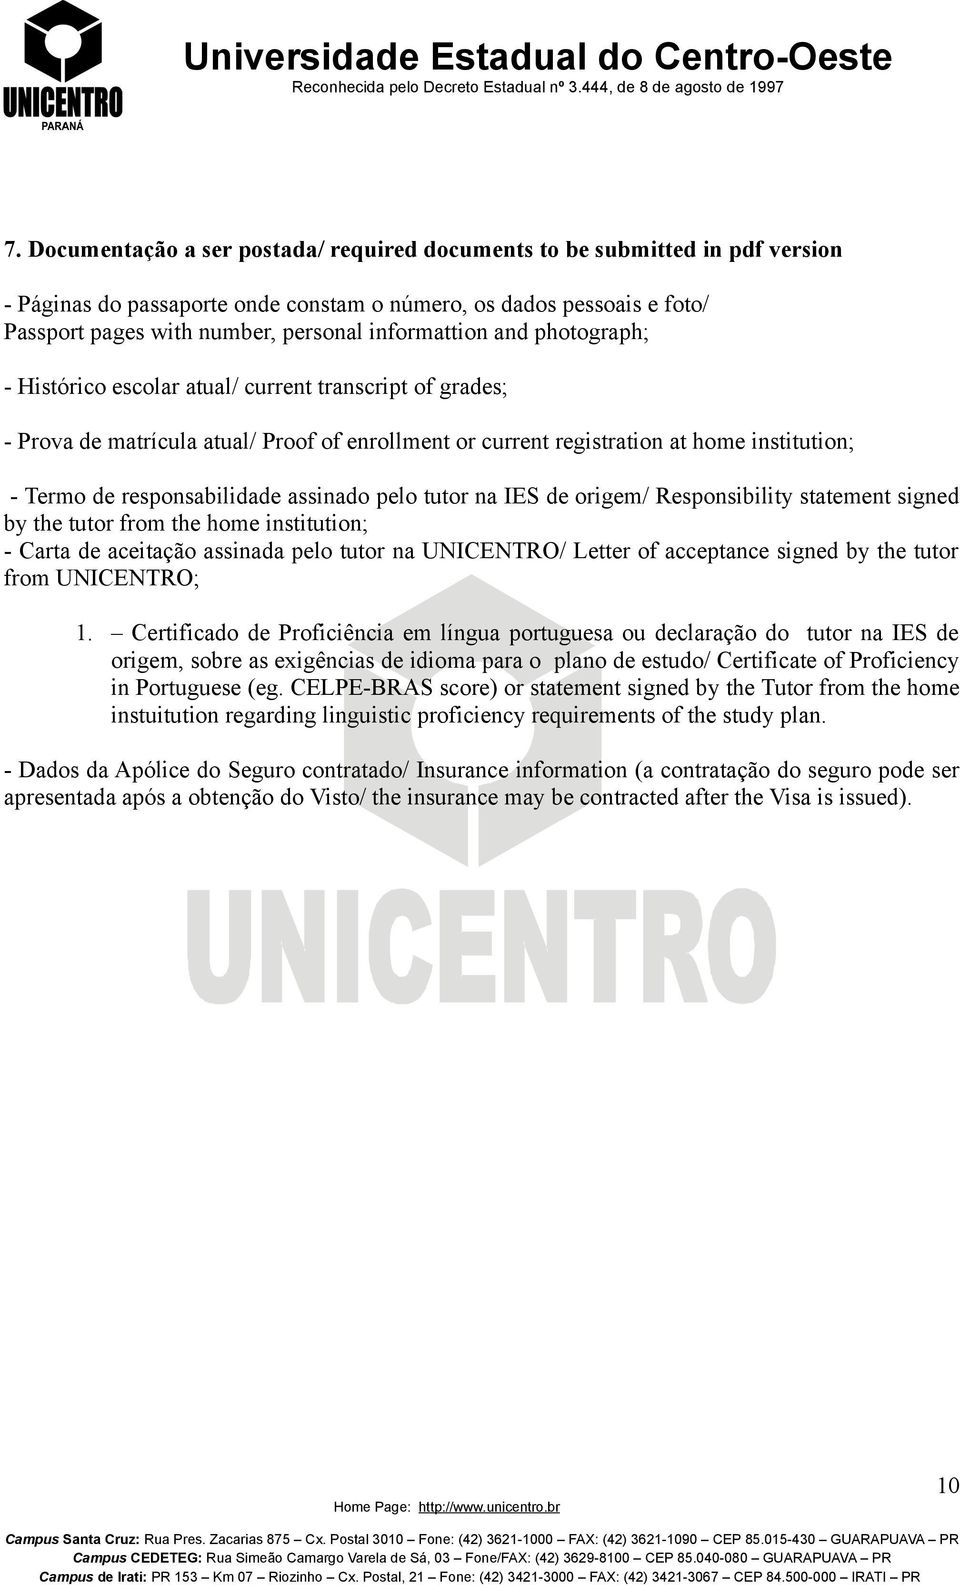 responsabilidade assinado pelo tutor na IES de origem/ Responsibility statement signed by the tutor from the home institution; - Carta de aceitação assinada pelo tutor na UNICENTRO/ Letter of